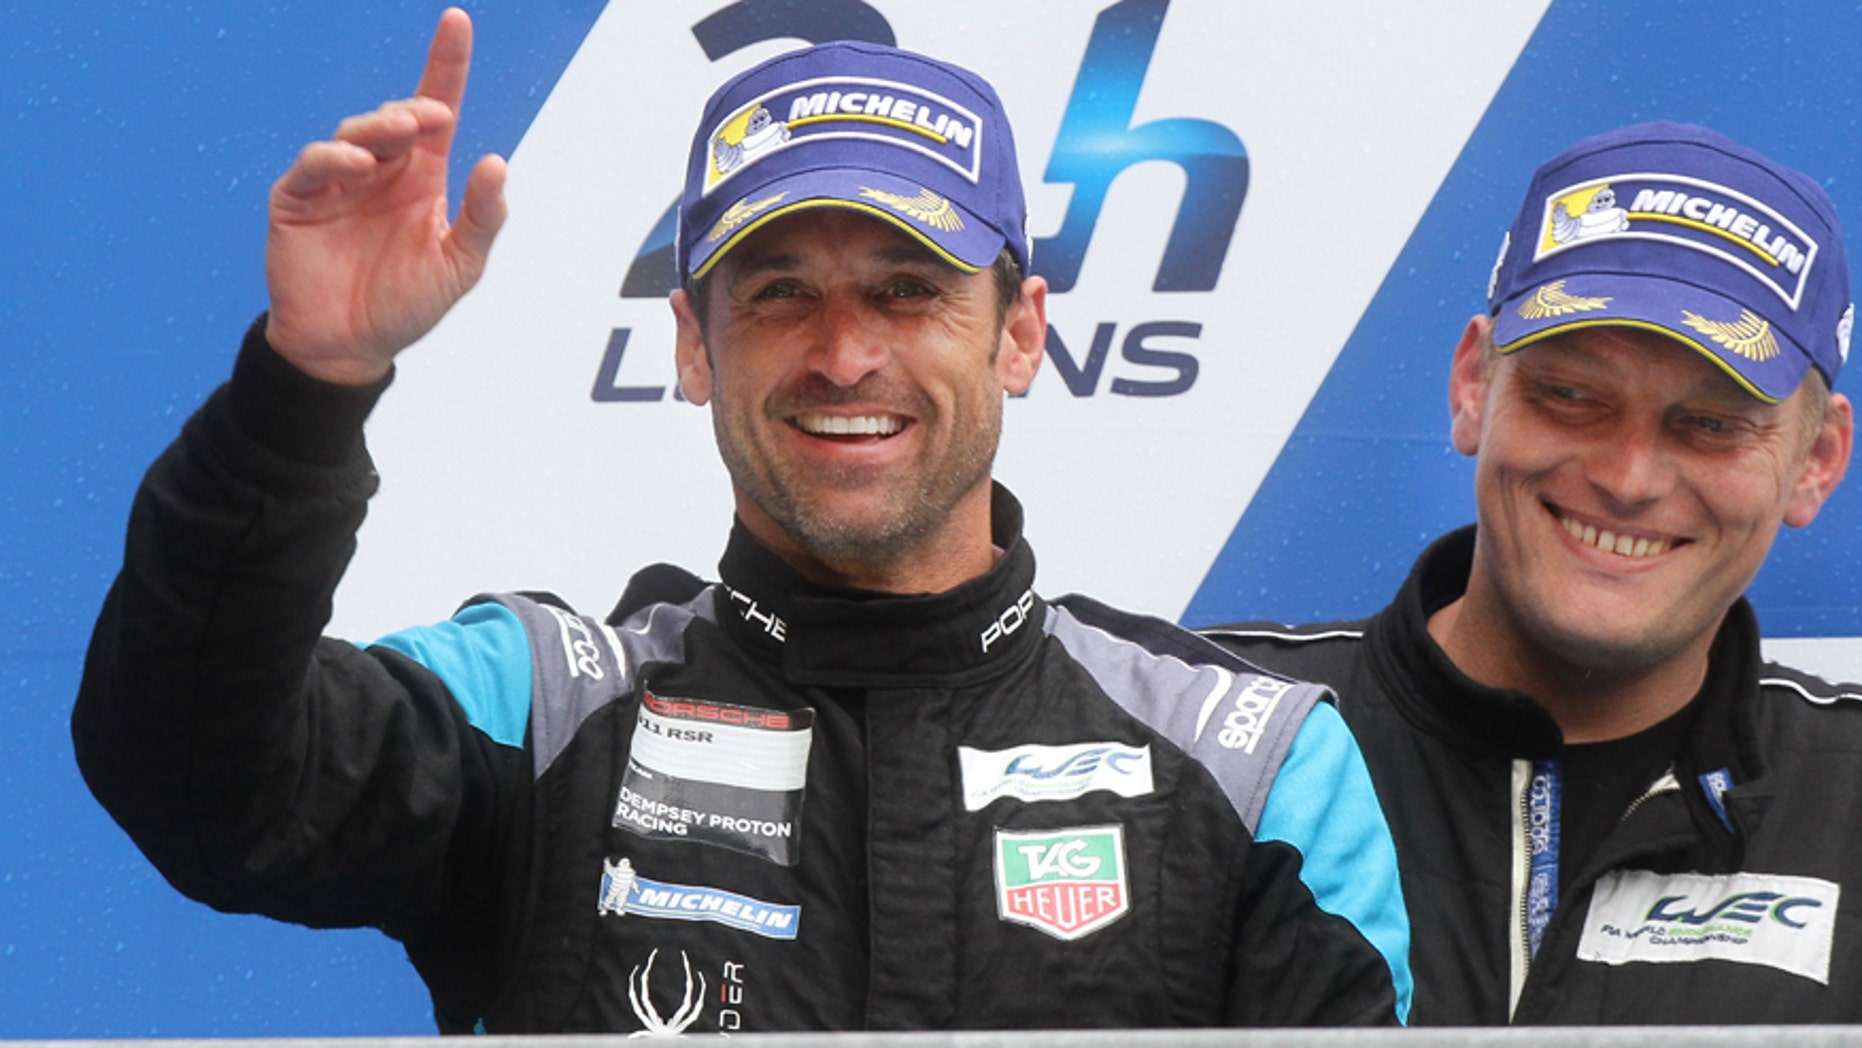 US actor Patrick Dempsey celebrates during the 83rd 24-hour Le Mans endurance race podium ceremony of the LM GTE AM category, as his team finished at the second place, in Le Mans, western France, Sunday, June 14, 2015. (AP Photo/David Vincent)